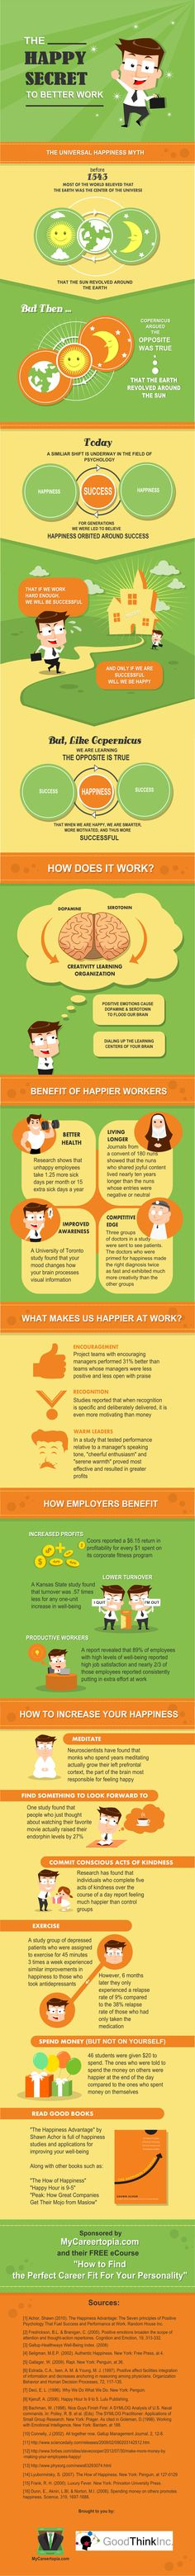 The happy secret to better work #infographic